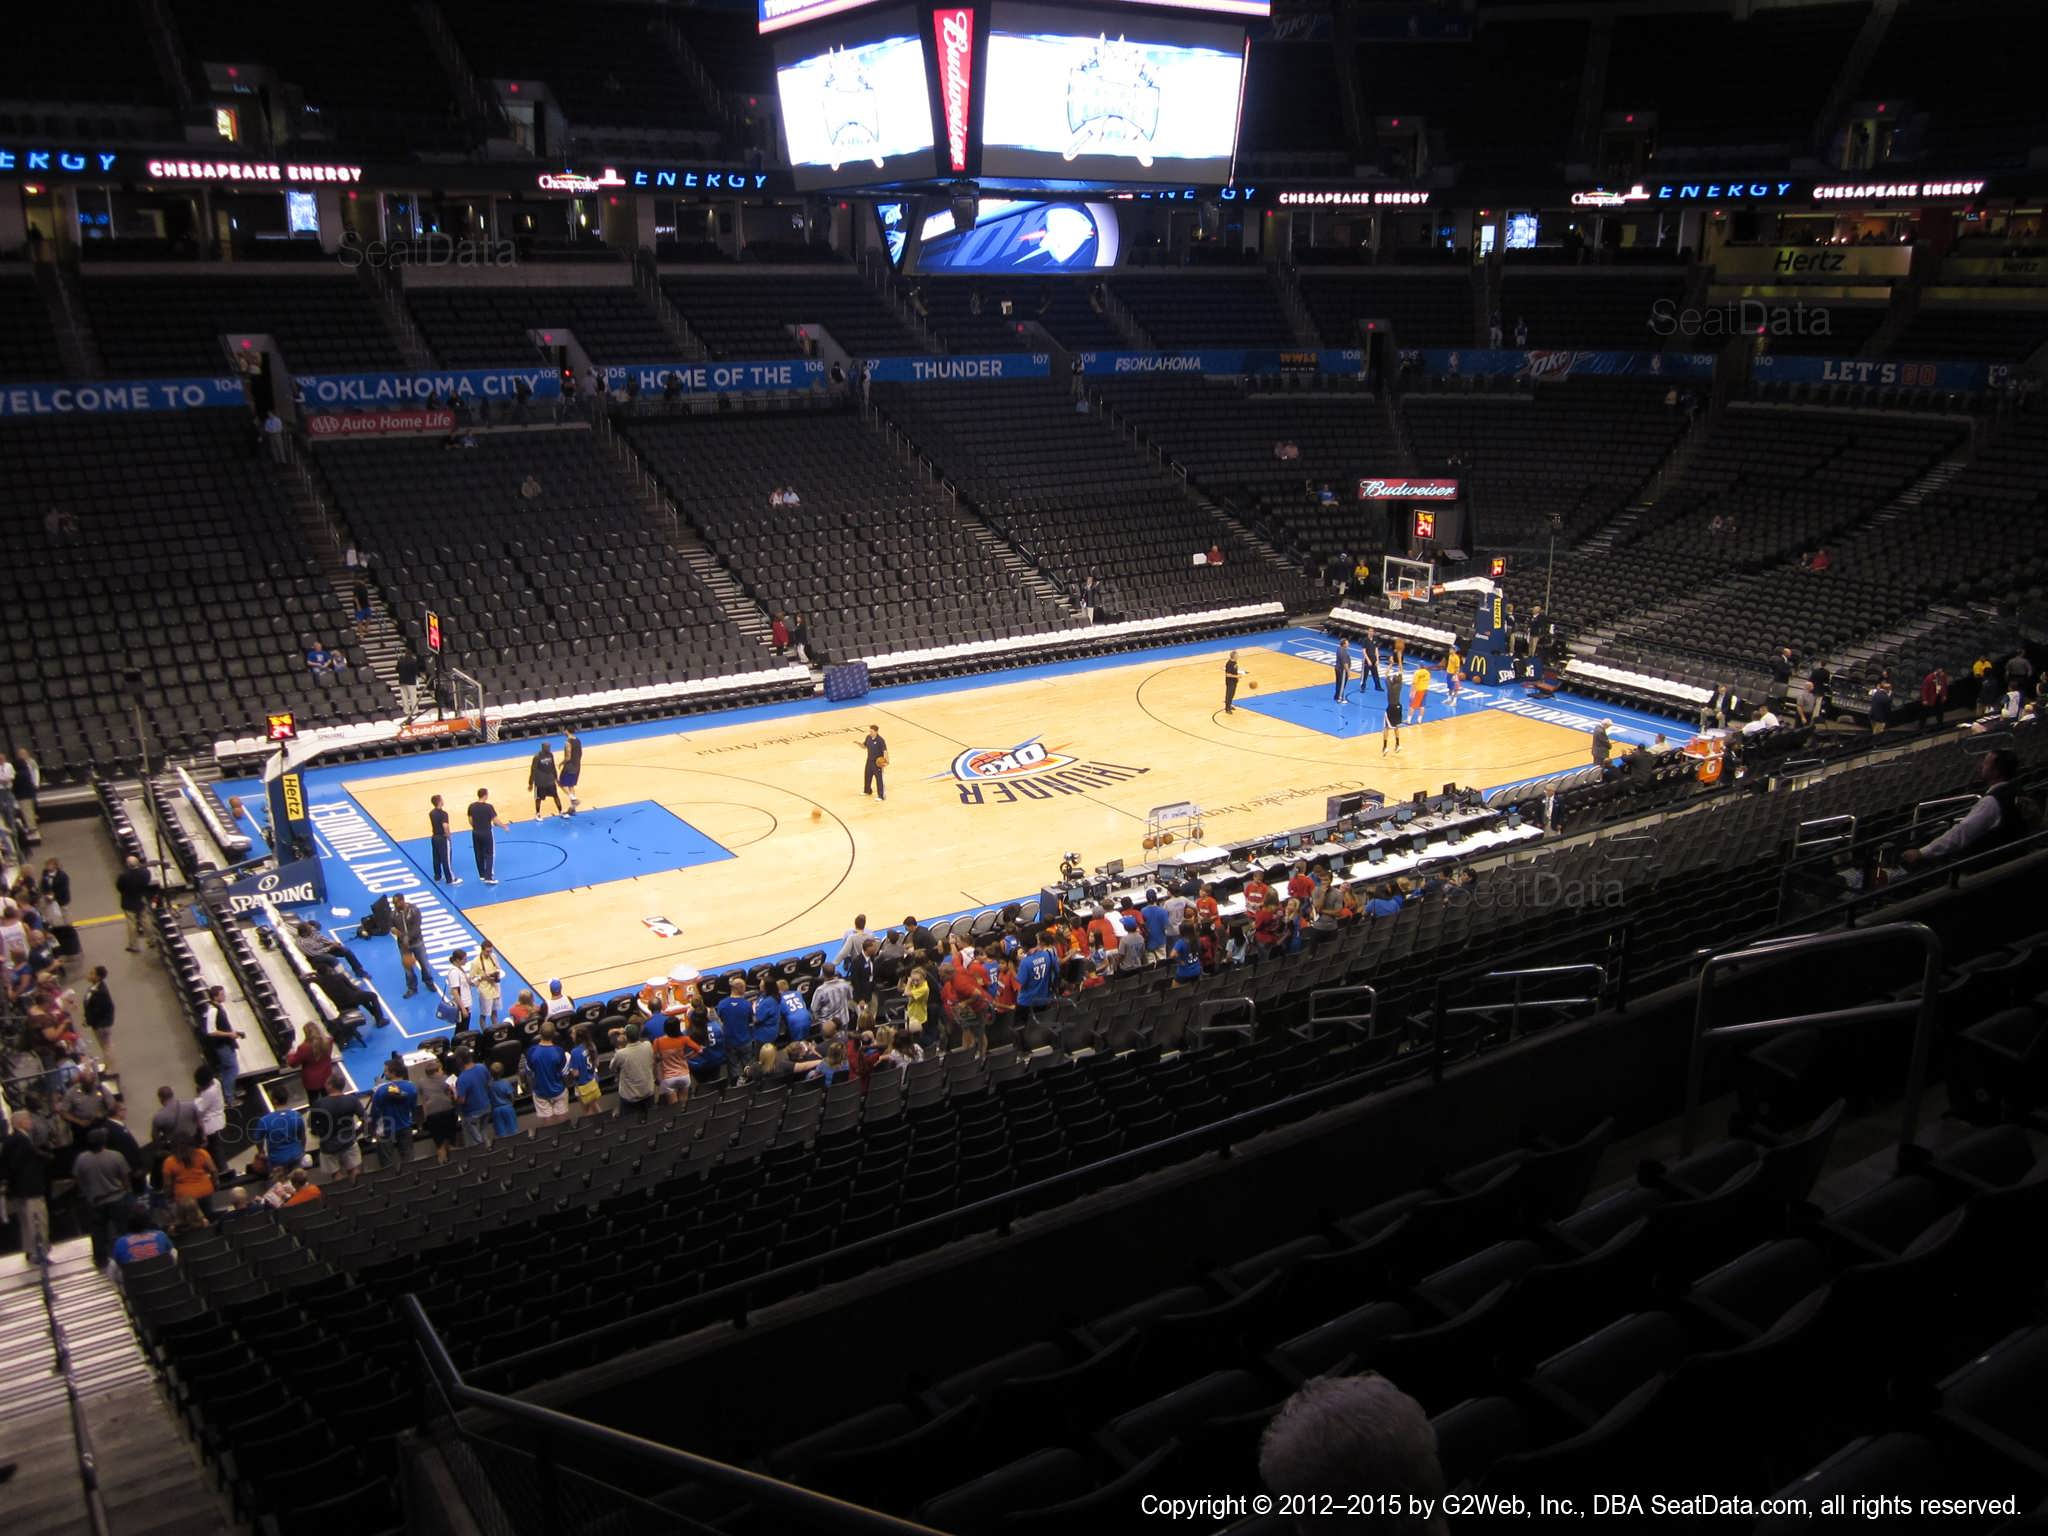 Seat view from section 225 at Chesapeake Energy Arena, home of the Oklahoma City Thunder